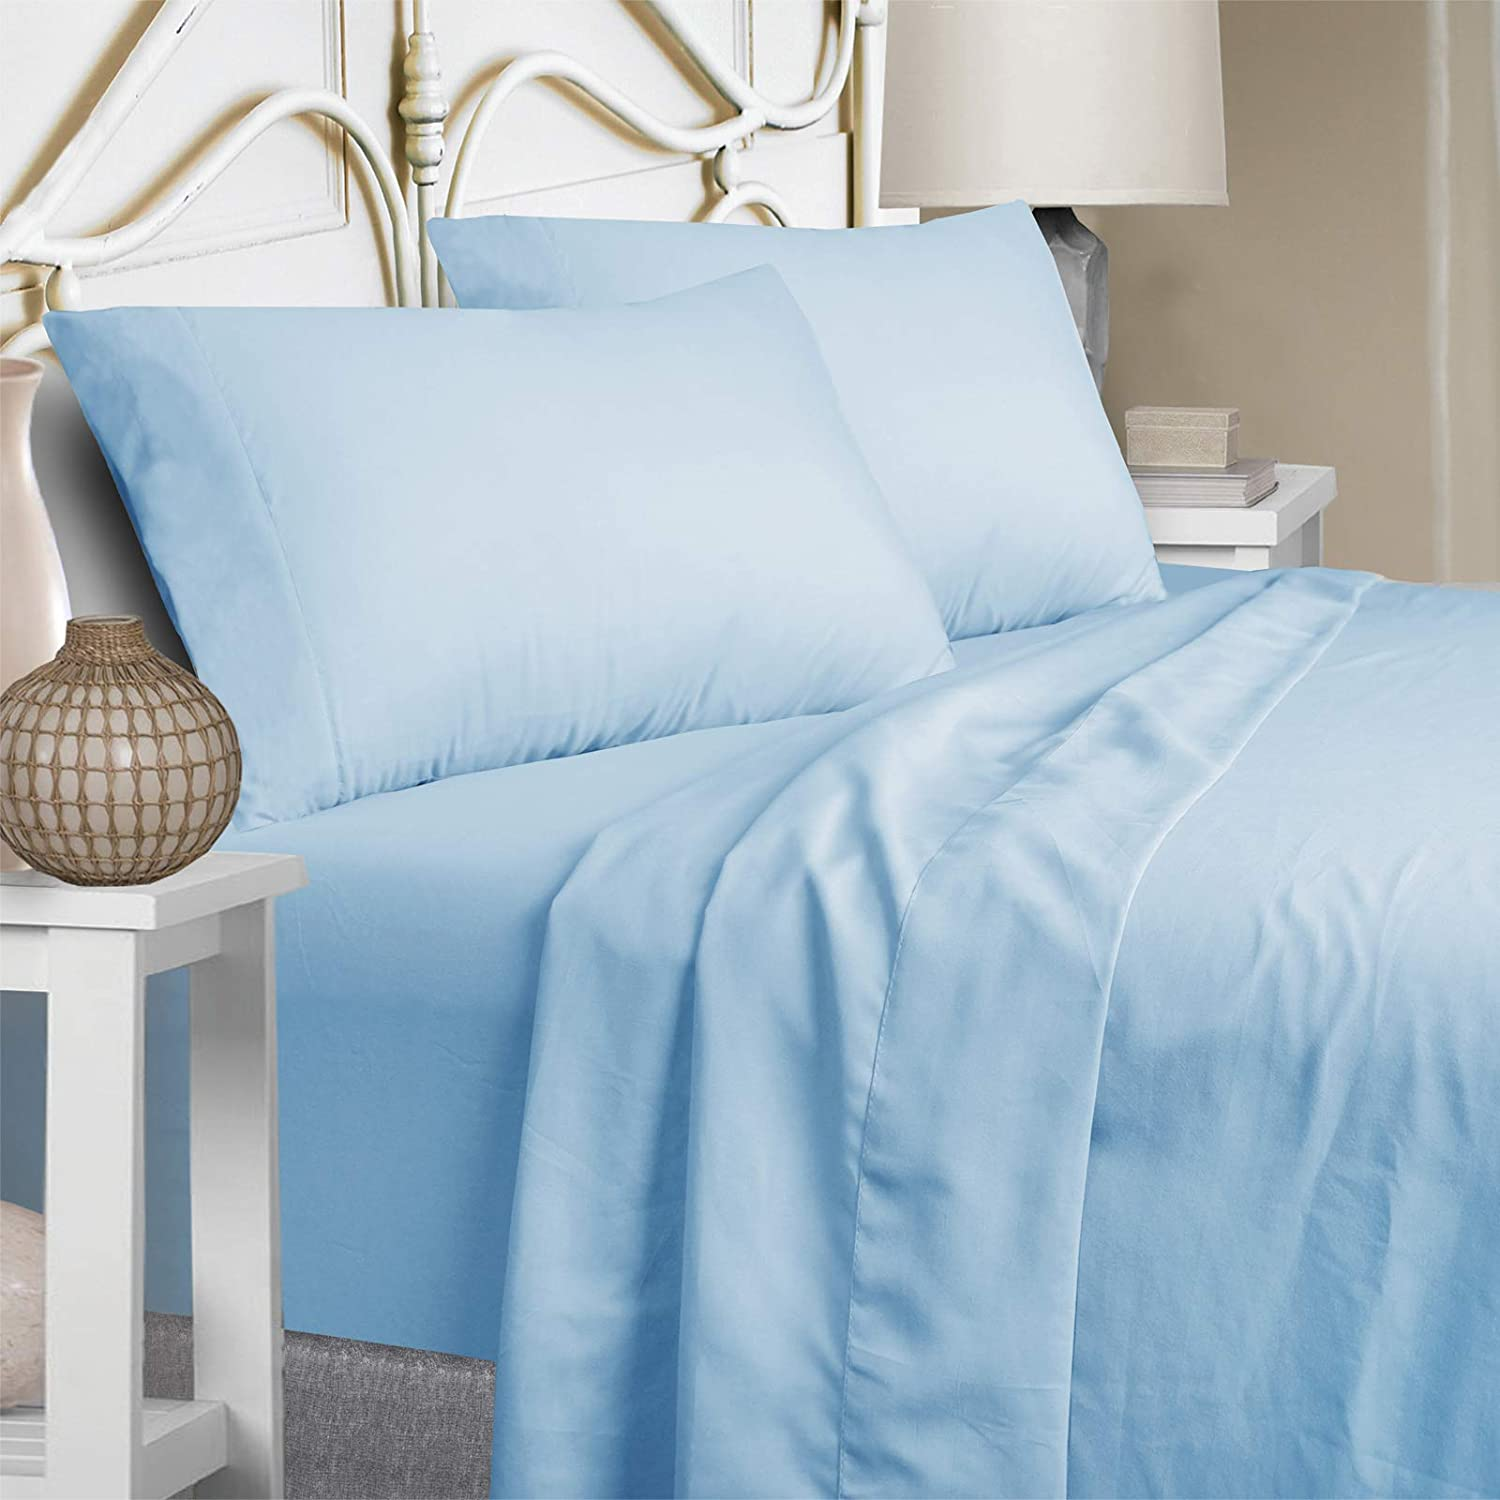 Mejoroom Bed Sheets Set Queen Size 15 Inches Deep Pocket 1800 Thread Count Microfiber Sheet,Bedding Super Soft Hypoallergenic Breathable,Resistant Fade Wrinkle Cool Warm - 4 Piece (Queen, Lake Blue)